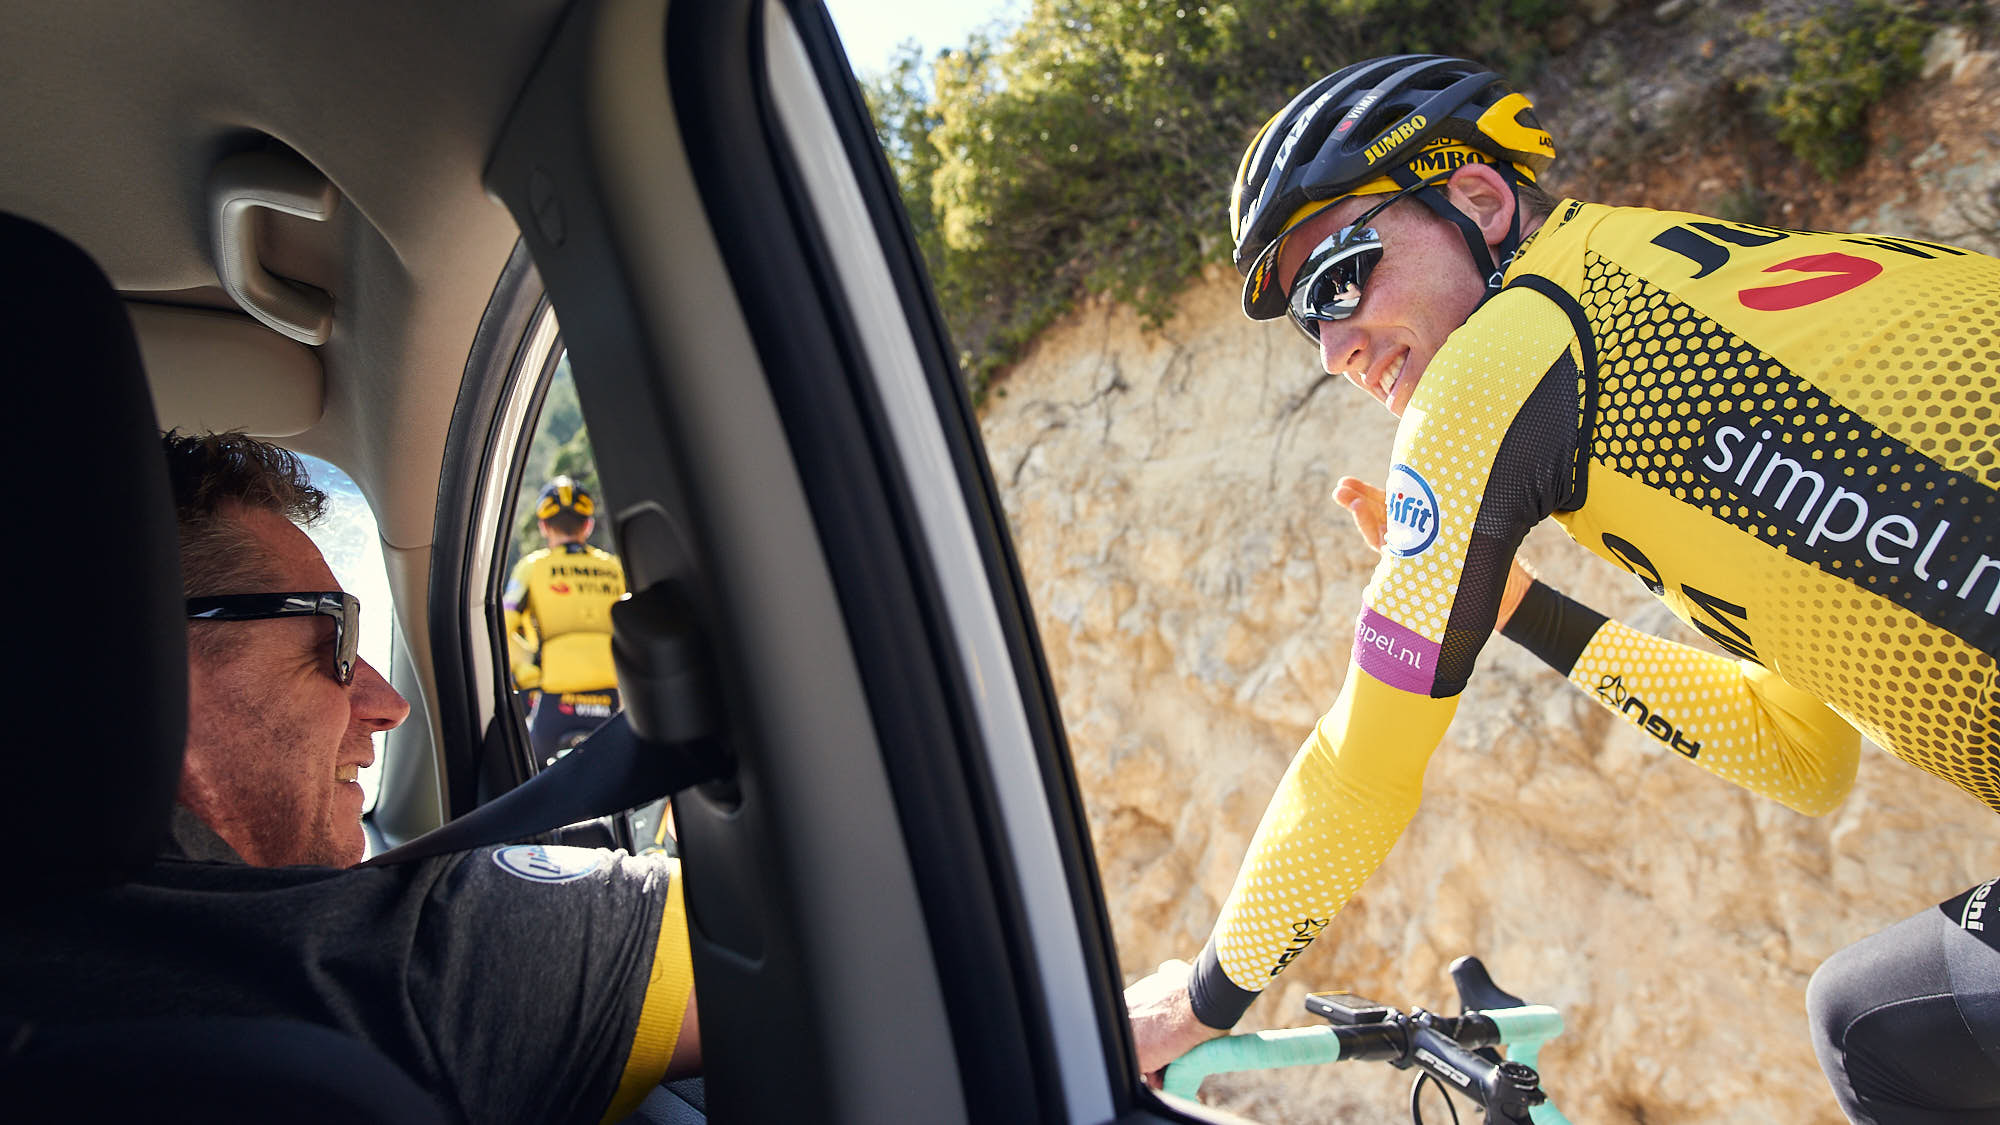 Jumbo-Visma rider Mike Teunissen during Alicante training stage